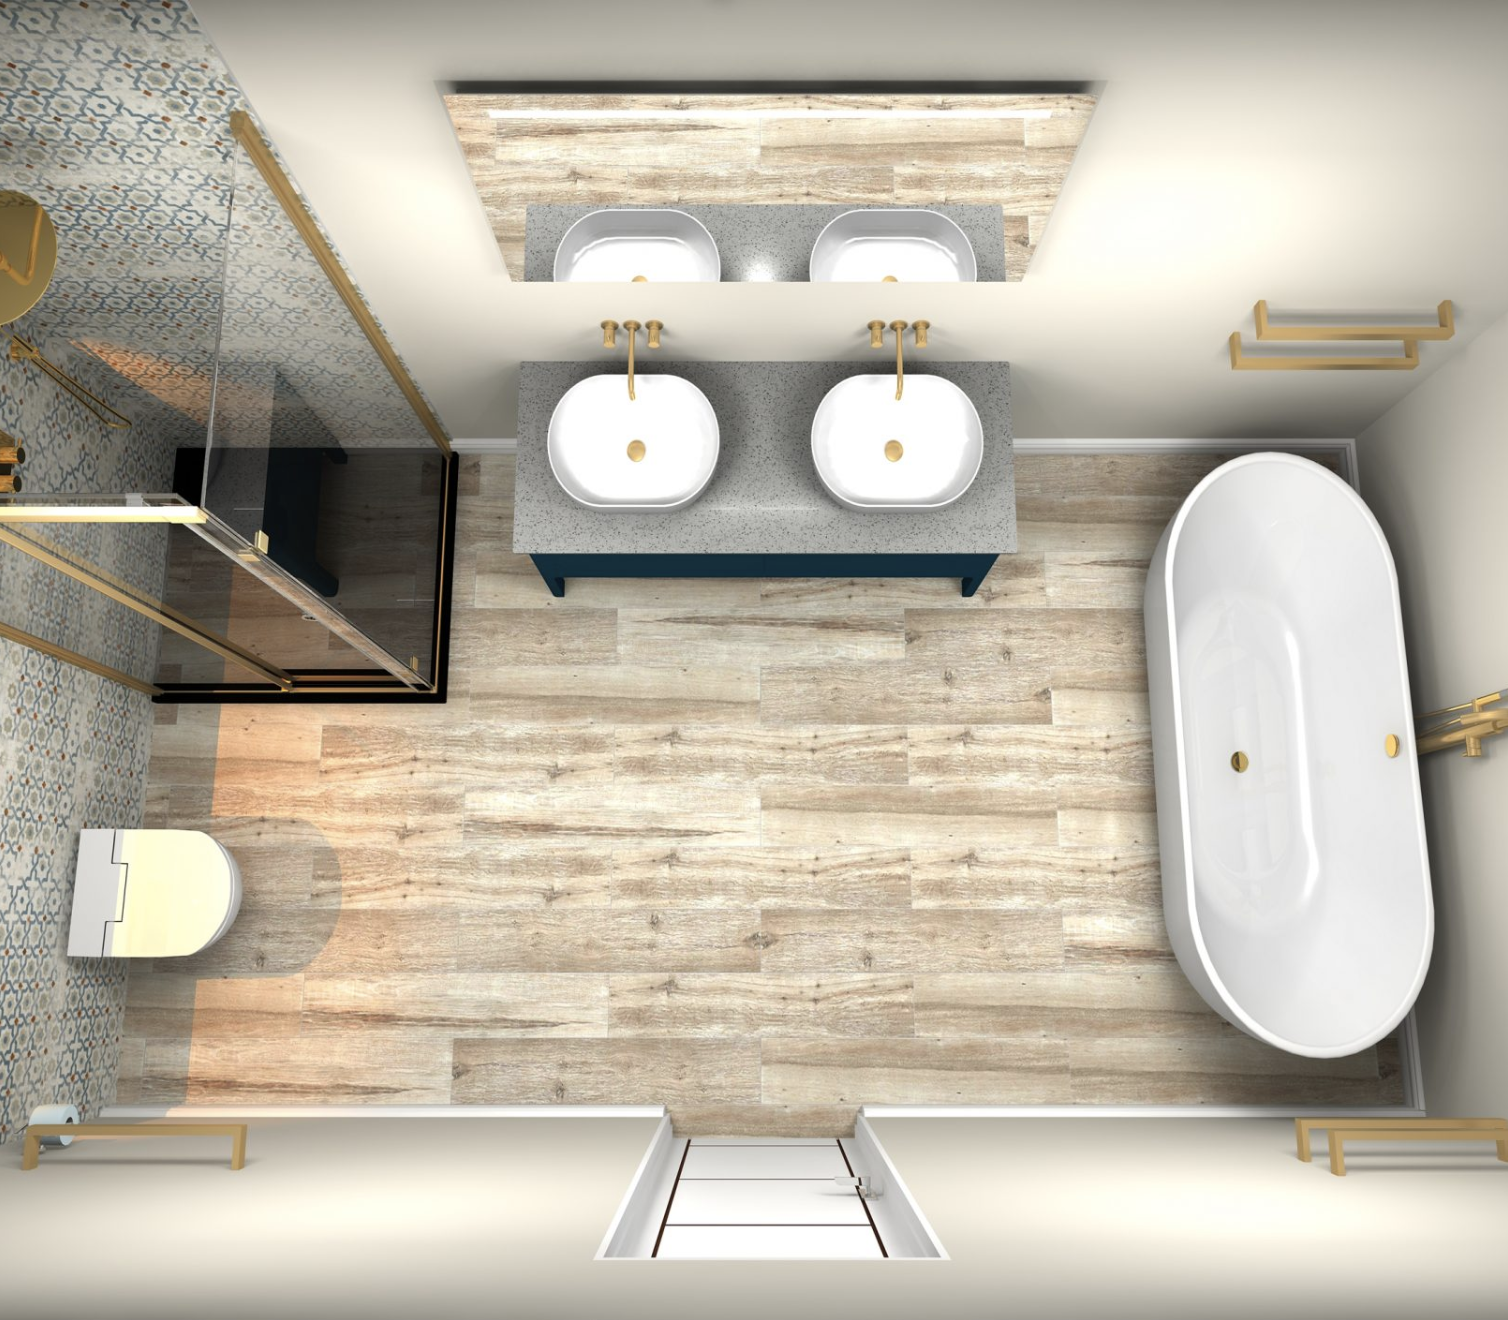 Bathroom Design Ideas Bathwaters Bathroom Design Small Shower Room Large Bathrooms